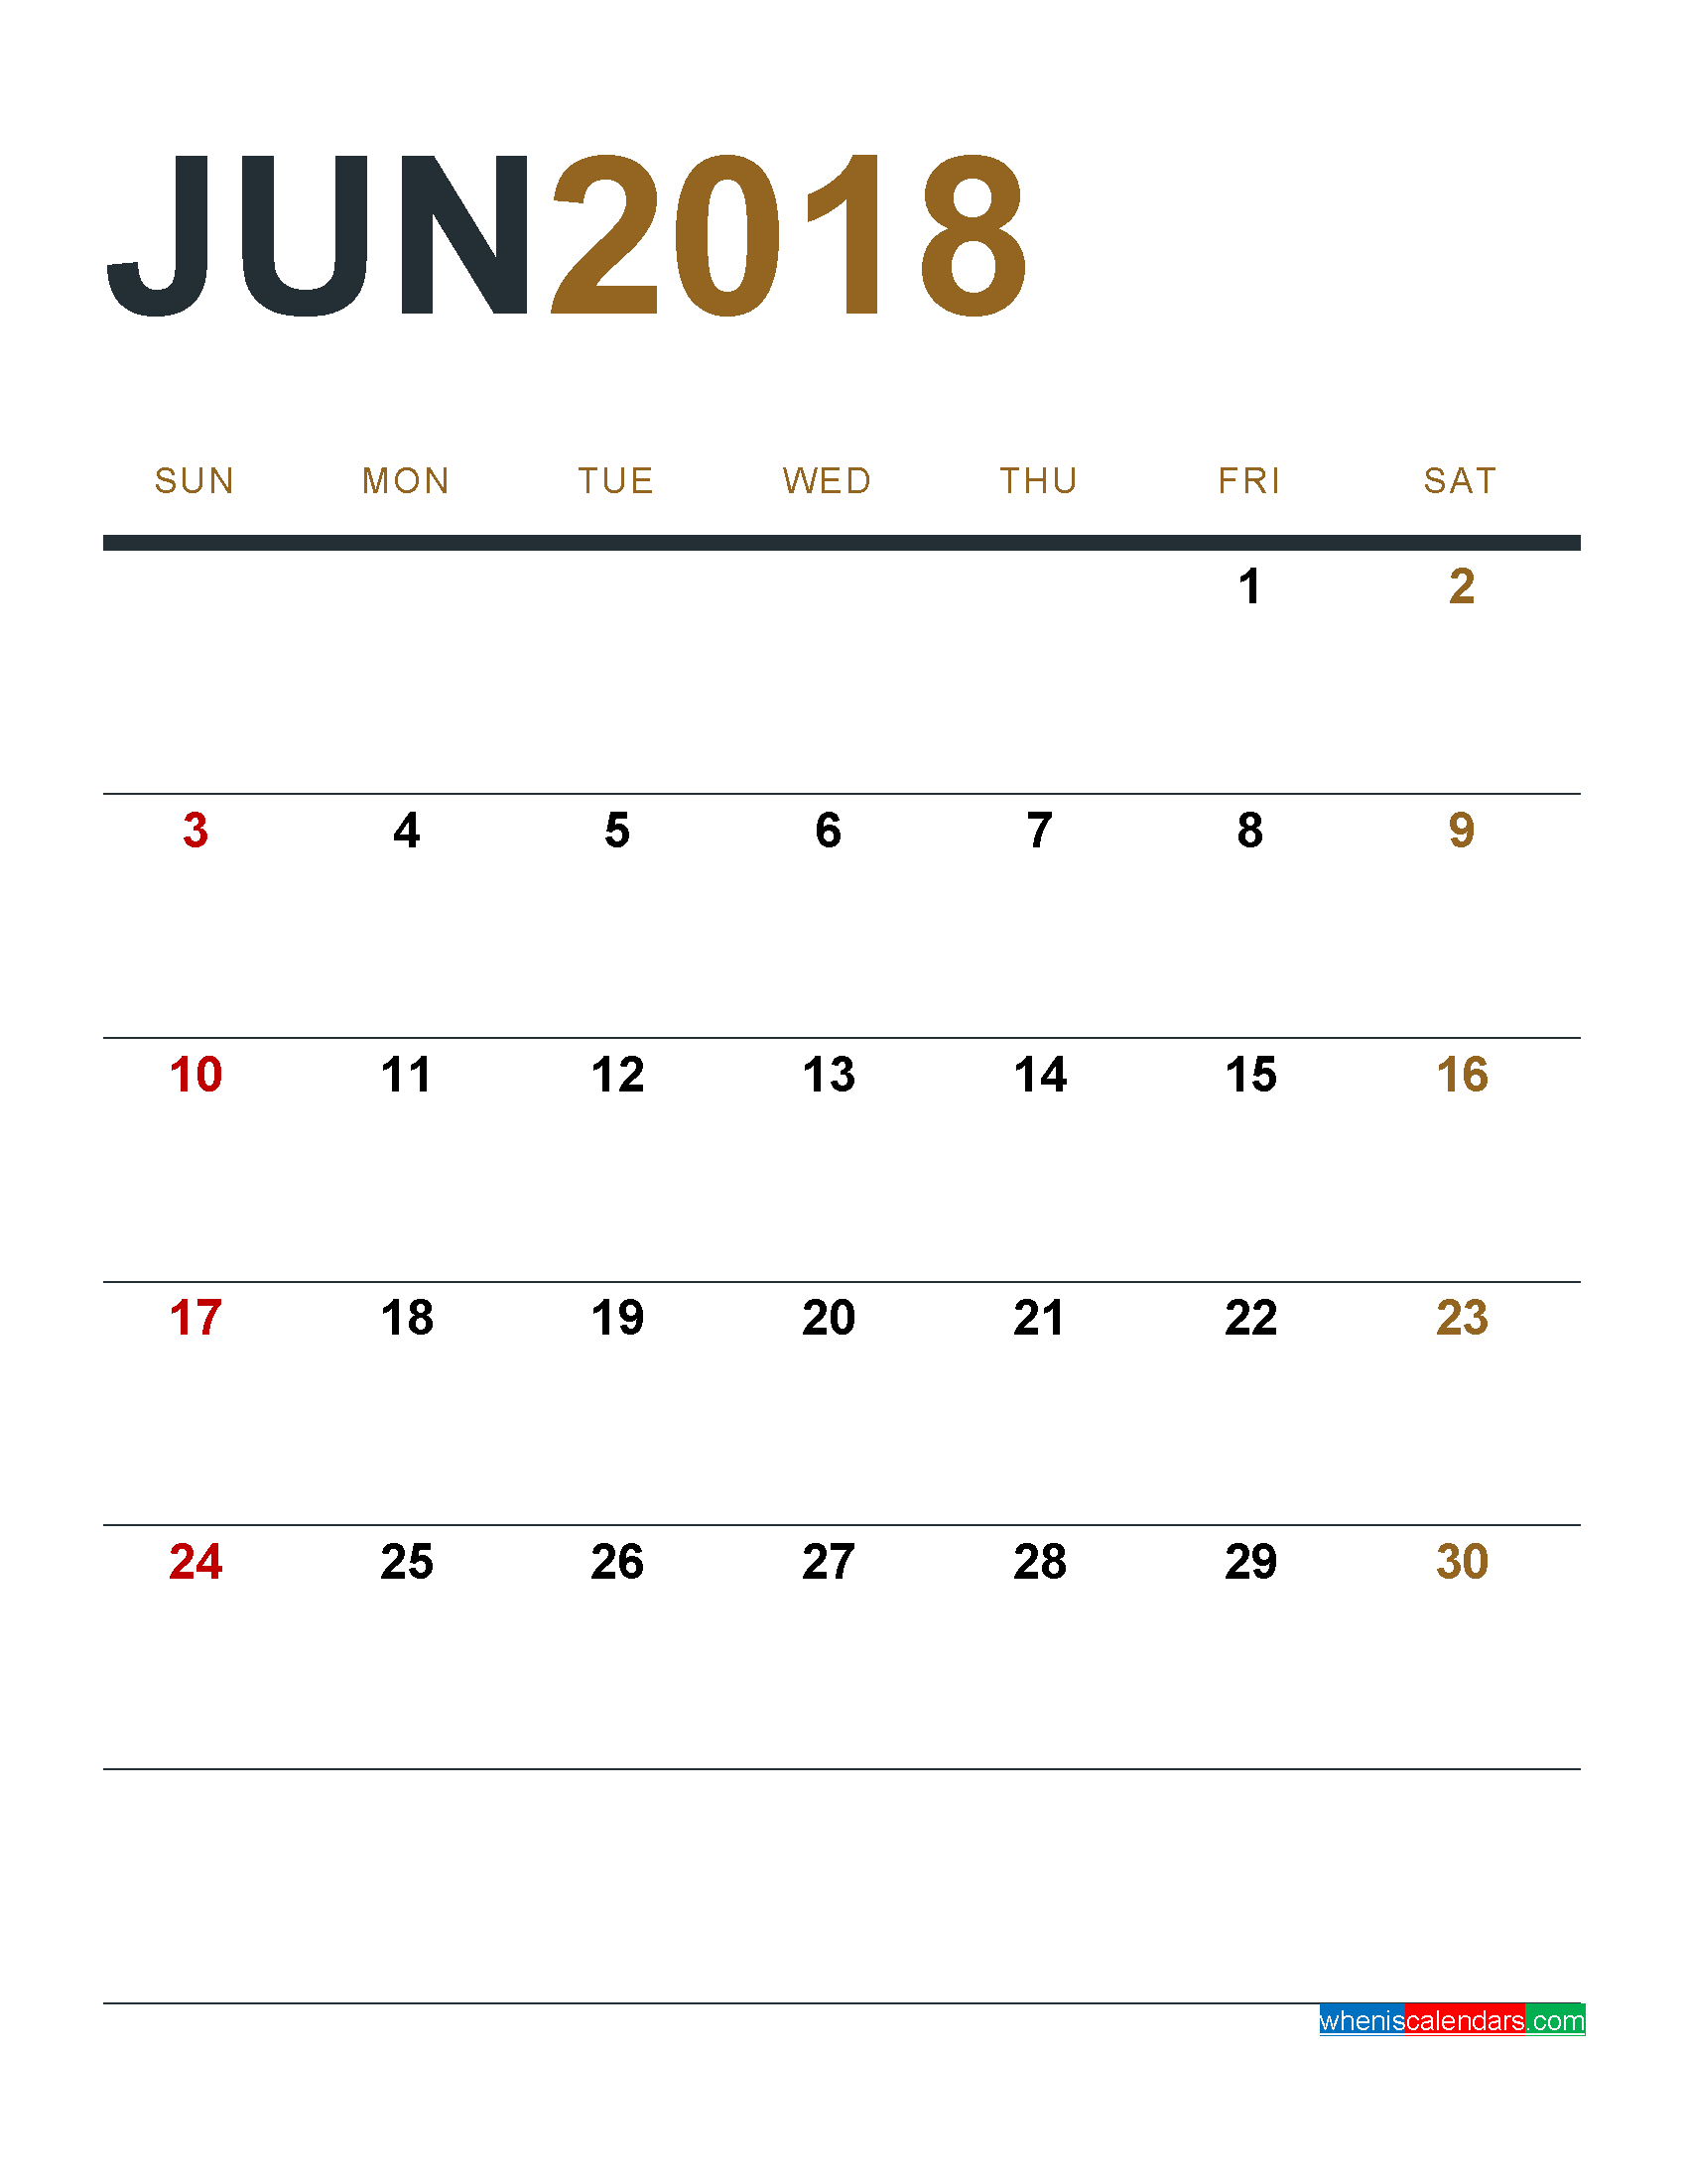 June 2018 Calendar Printable as PDF and Image 1 Month 1 Page ...